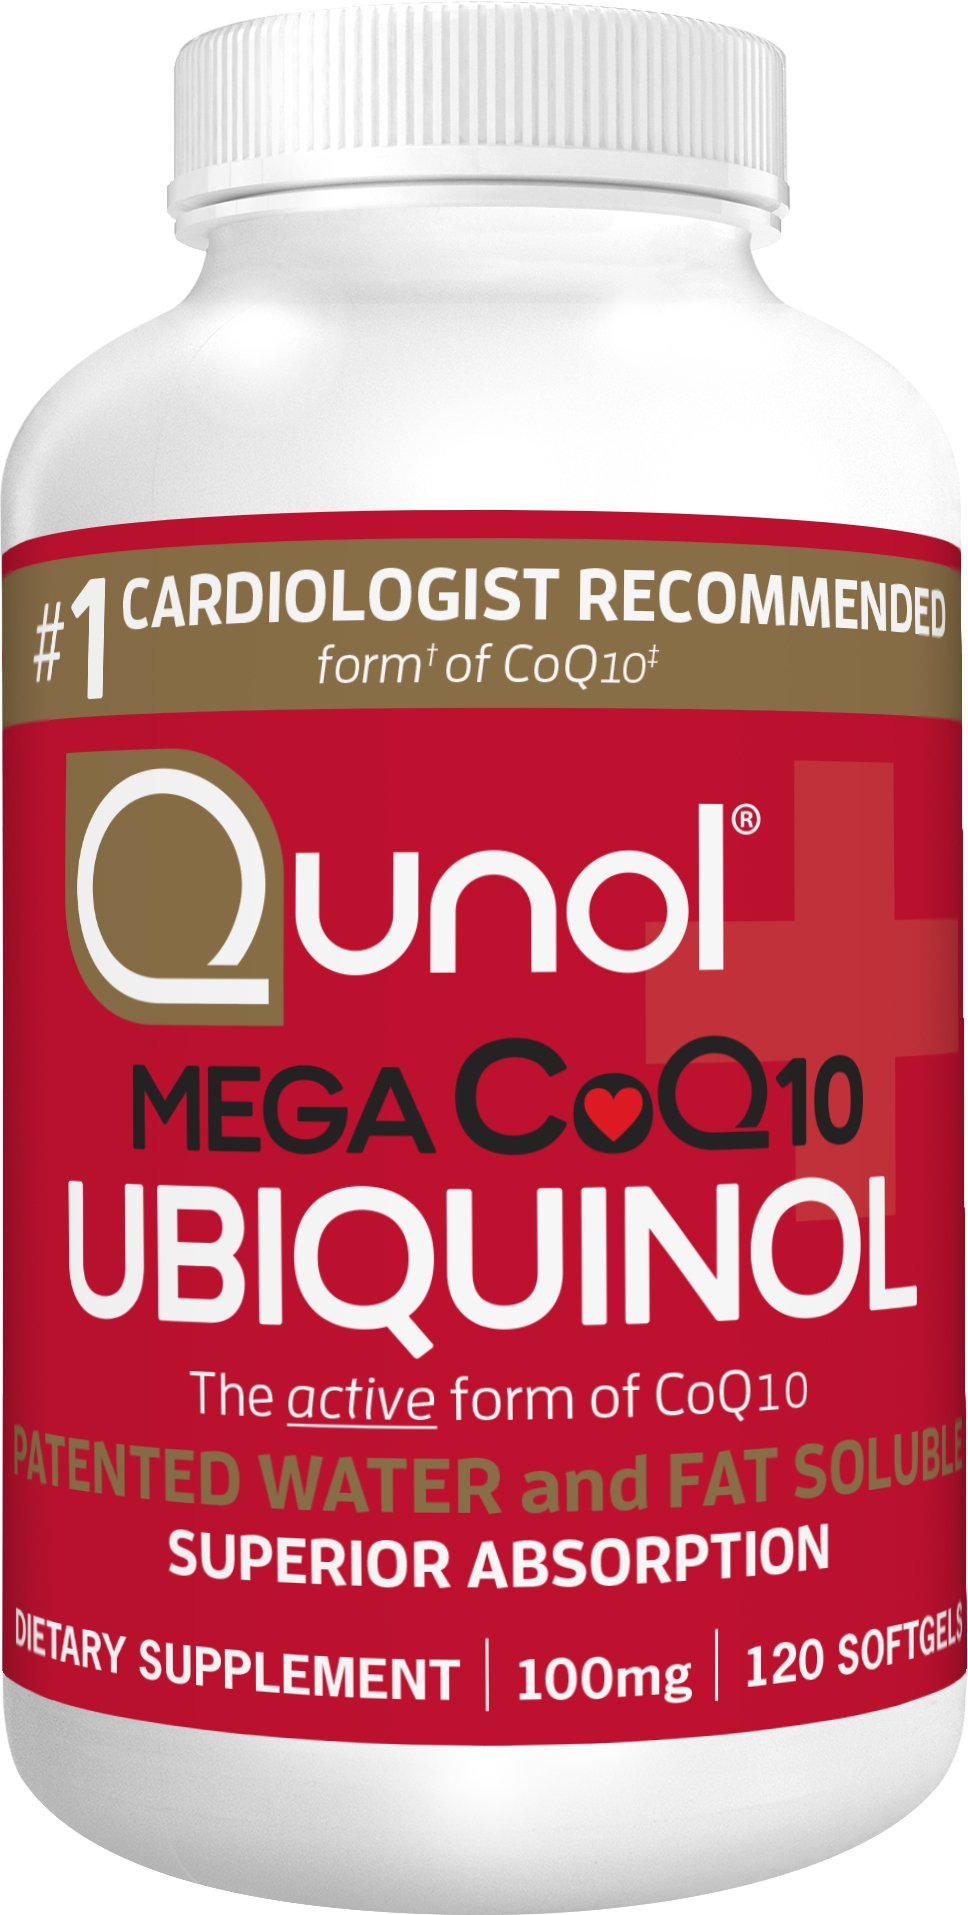 Qunol Mega 100mg CoQ10 Ubiquinol, Superior Absorption, Patented Water and Fat Soluble Natural Supplement Form of Coenzyme Q10, Antioxidant for Heart Health, 120 Count Softgels